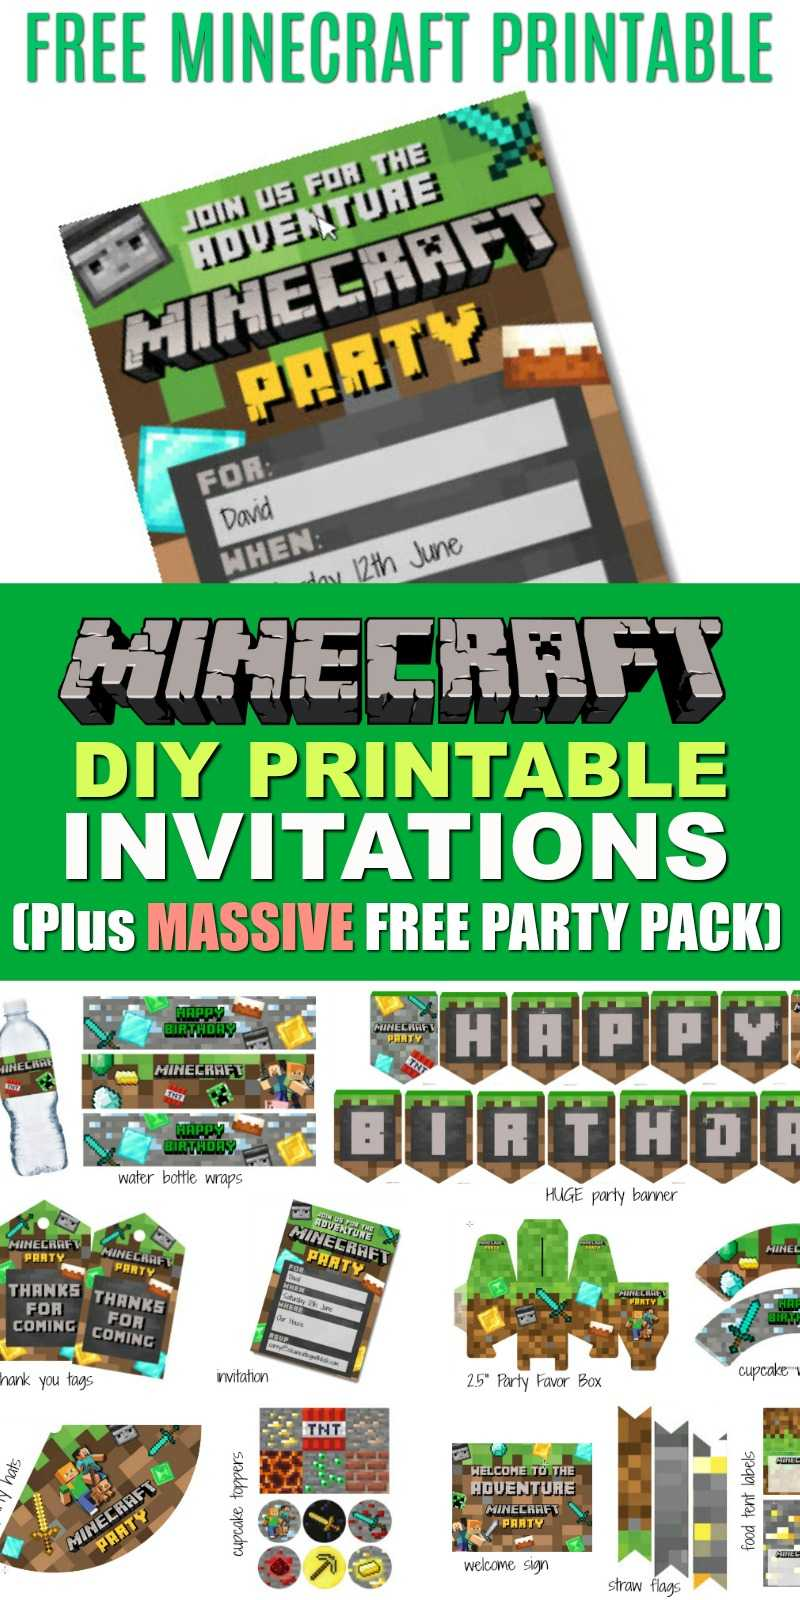 Free Diy Printable Minecraft Birthday Invitation - Clean For Minecraft Birthday Card Template